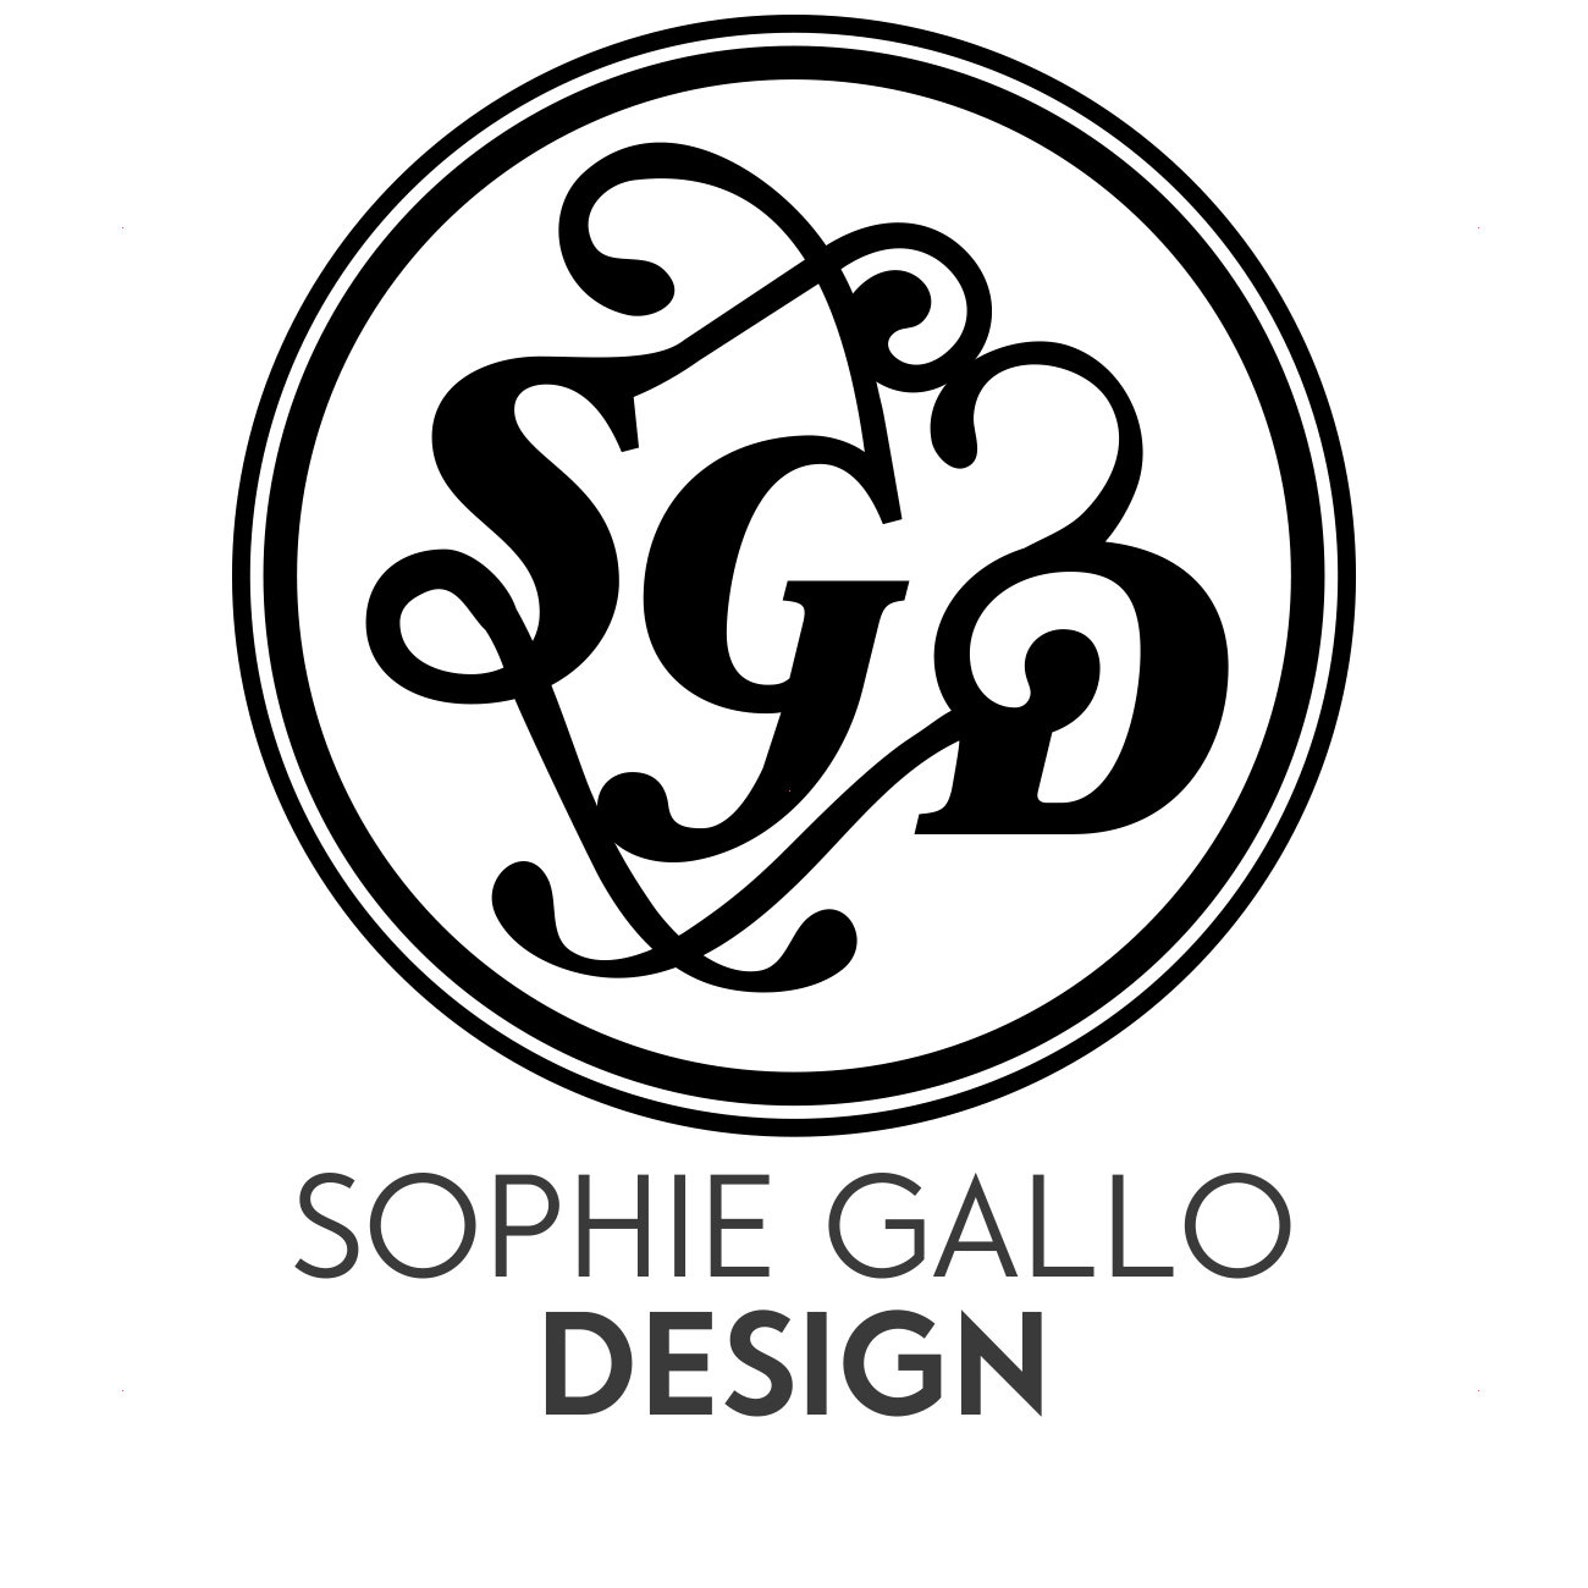 ballet shoe monogram design, svg, dxf digital download files for silhouette, cricut, vector graphics vinyl cutting machines, scr